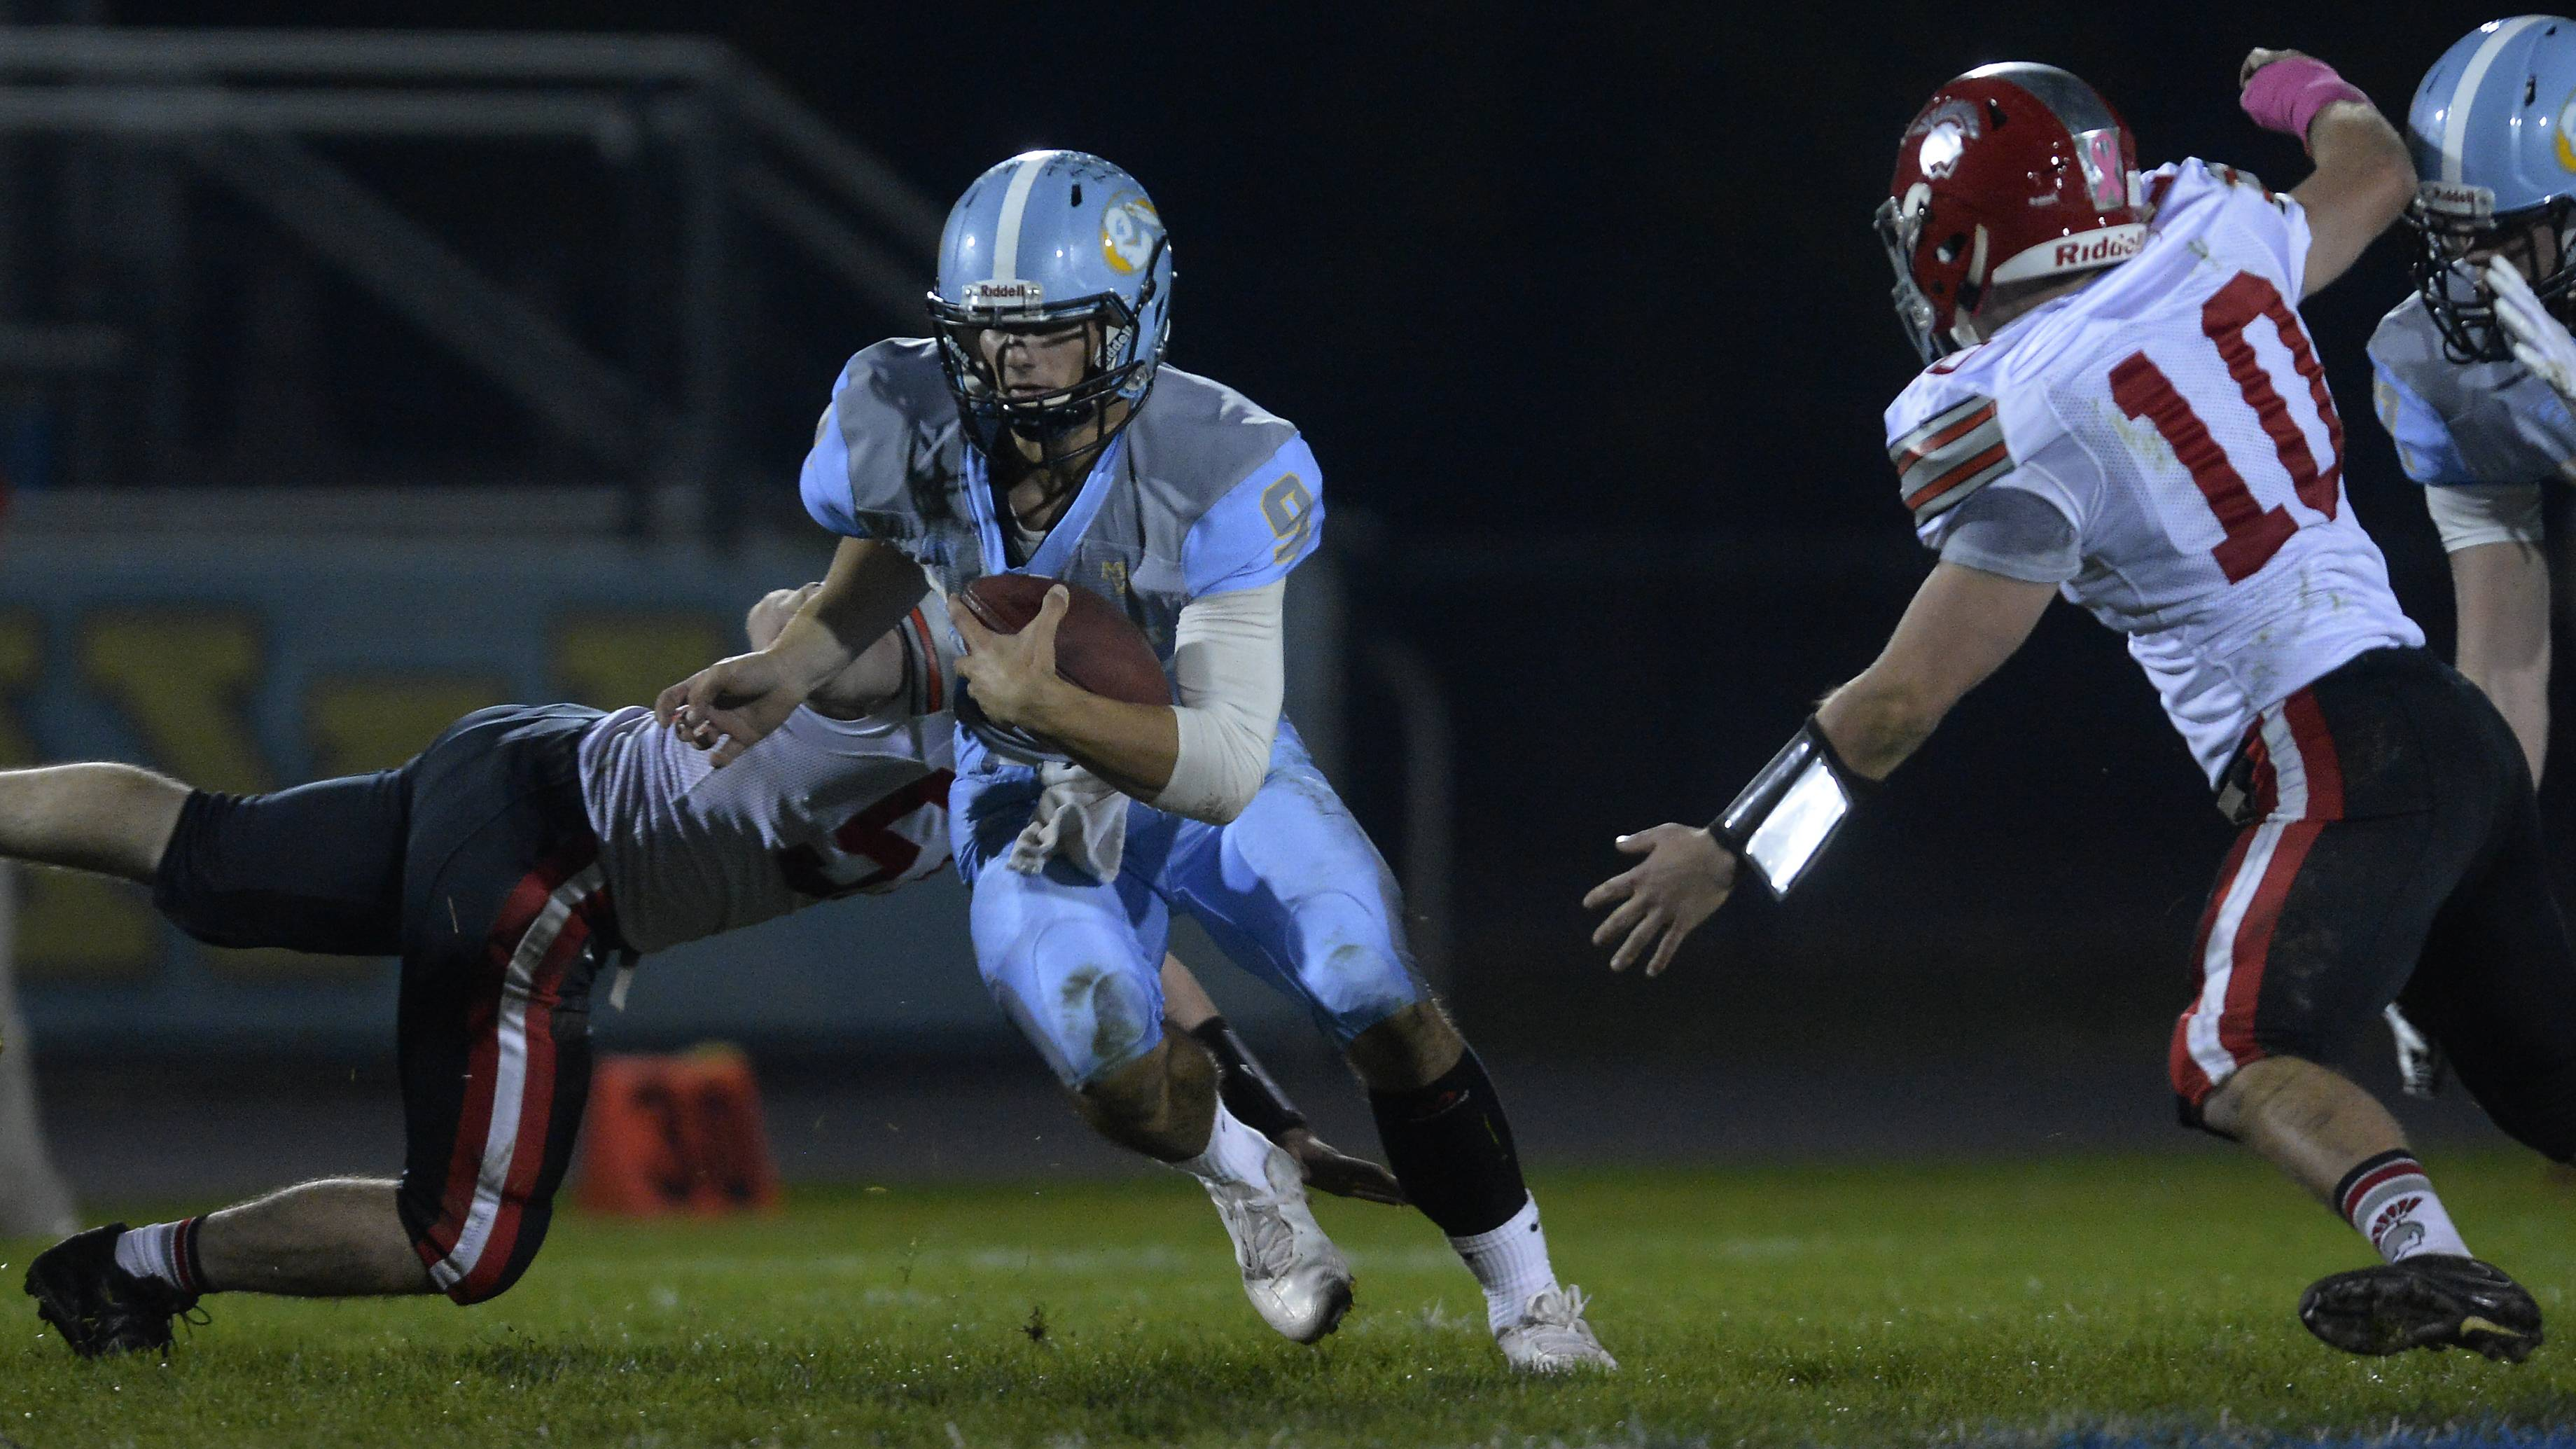 Maine West quarterback George Markakis keeps the ball for a first down in the second quarter against Deerfield on Friday.